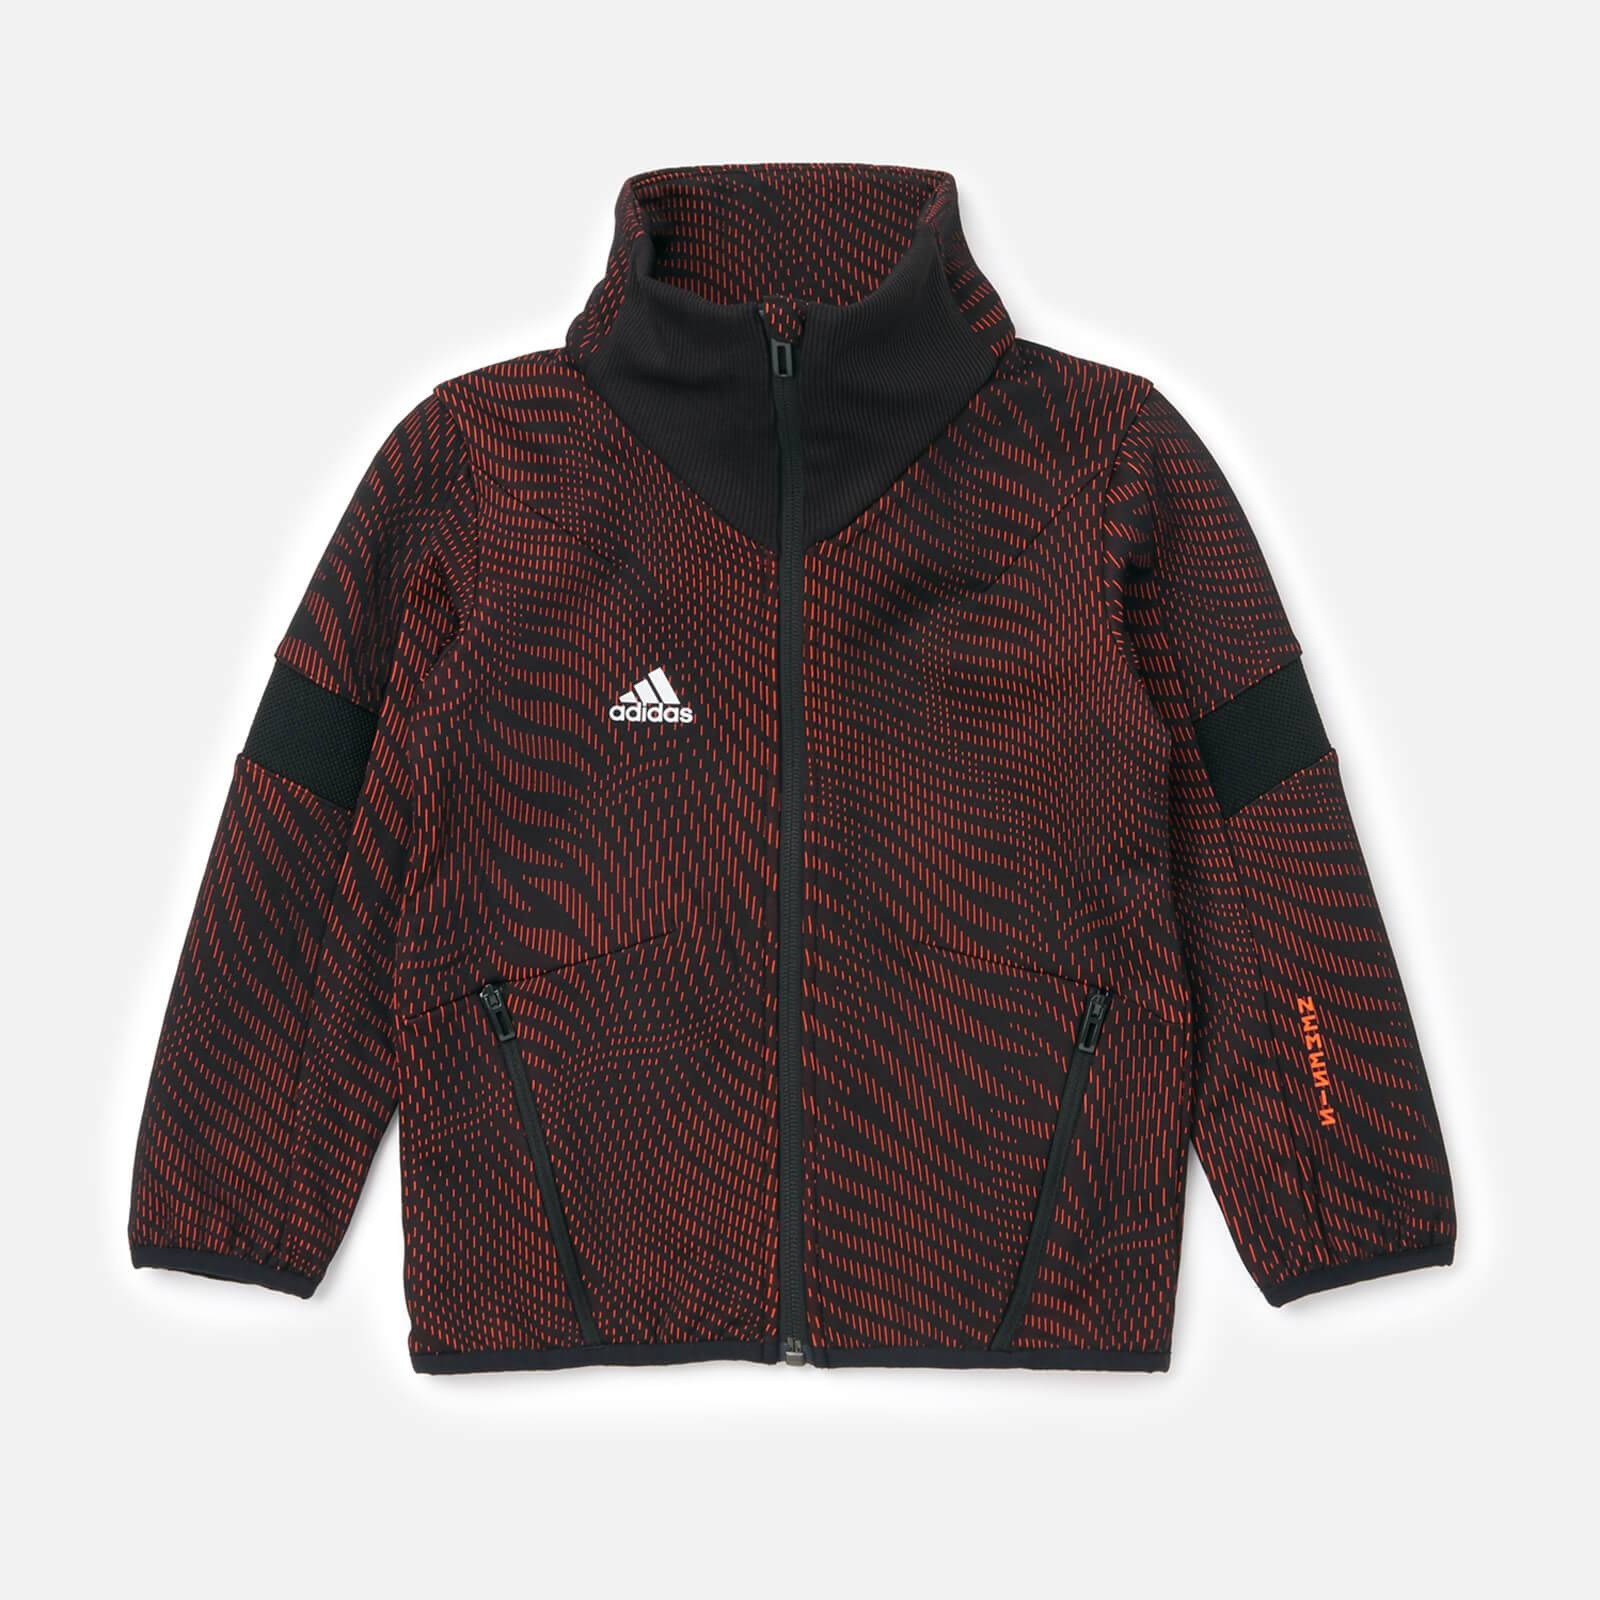 adidas Boys' Young Boys Nemis Top - Red - 7-8 Years